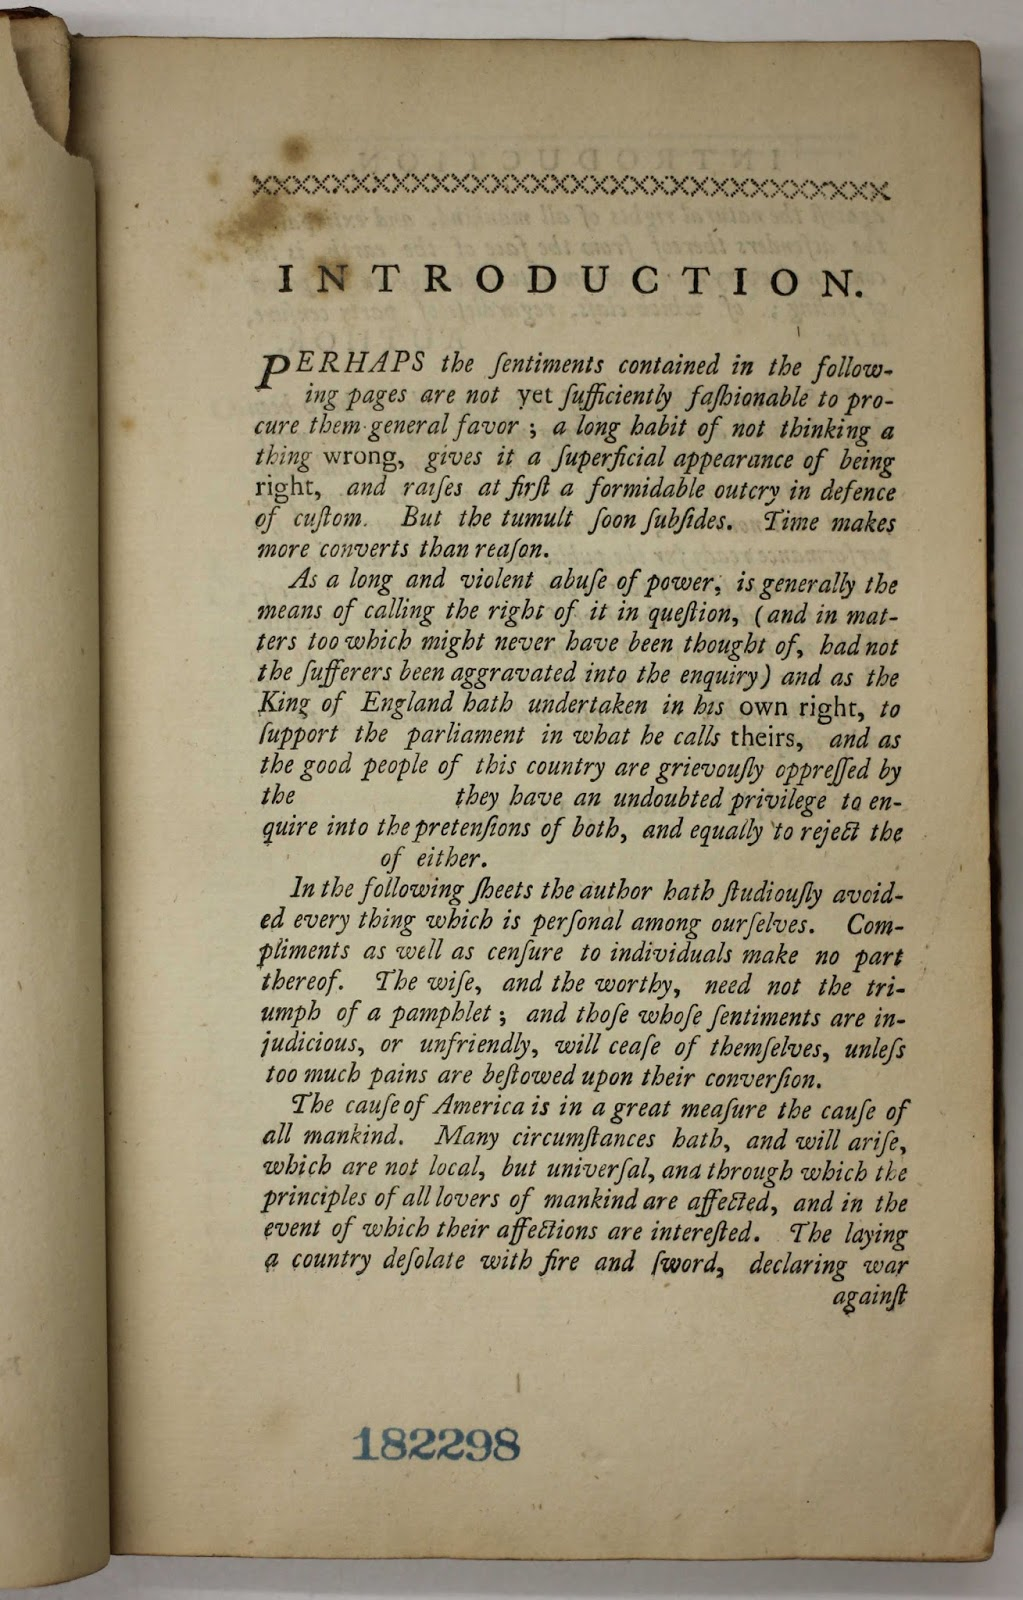 brandeis special collections spotlight thomas paine s common the 48 page pamphlet was the fuel that the colonists needed to have courage to rise against the british empire an astonishing contemplation for a common